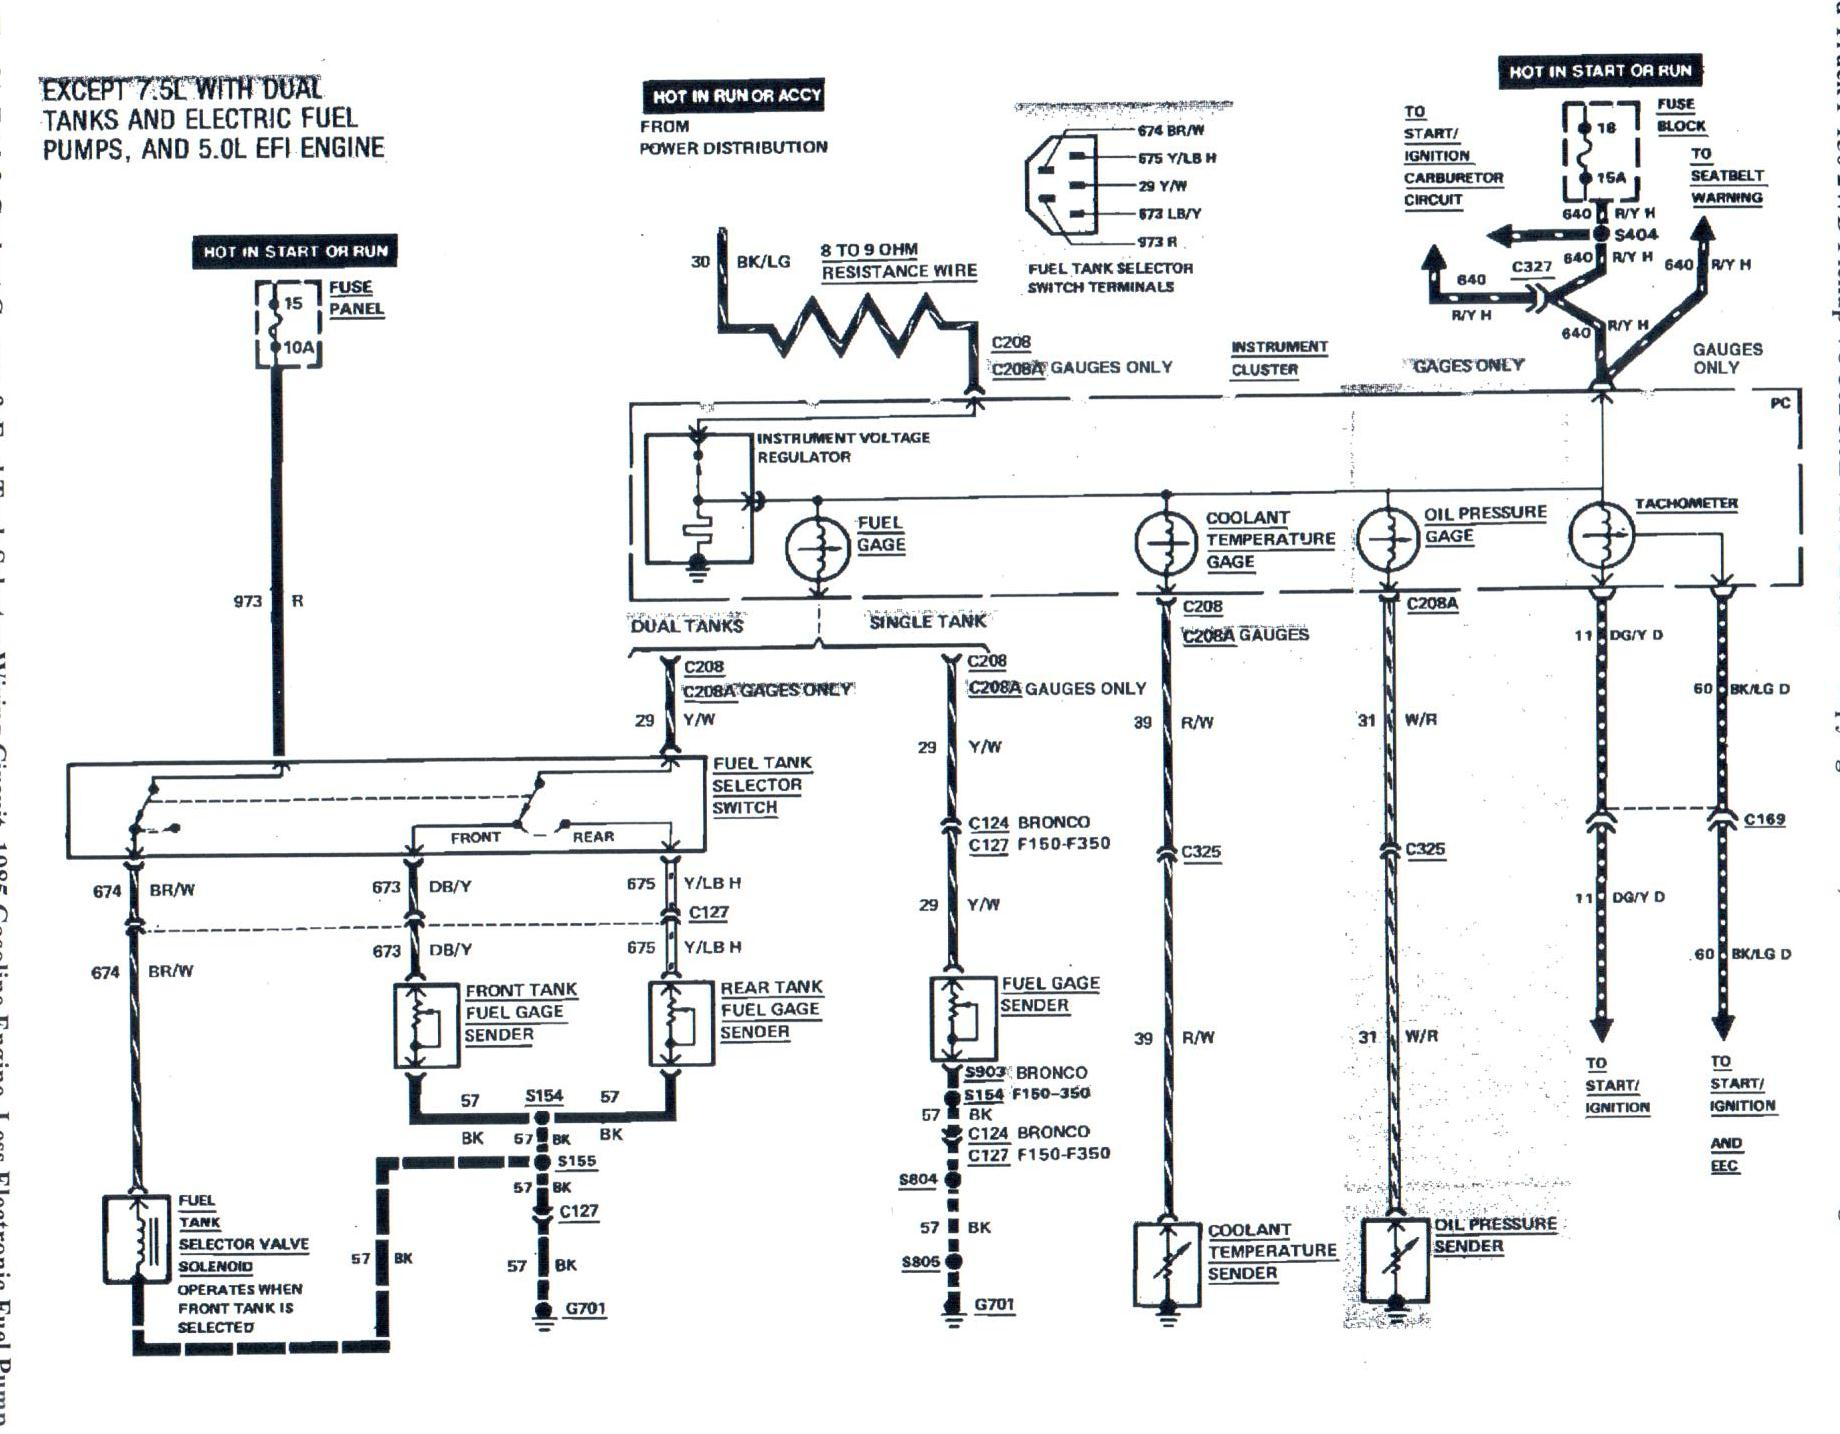 1985 ford f 250 fuel tank wiring diagram basic guide wiring diagram \u2022 2012 ford f250 wiring diagram 1985 ford f 250 fuel tank wiring diagram wiring rh westpol co 1987 ford f 250 wiring diagram ford f 250 trailer wiring diagram